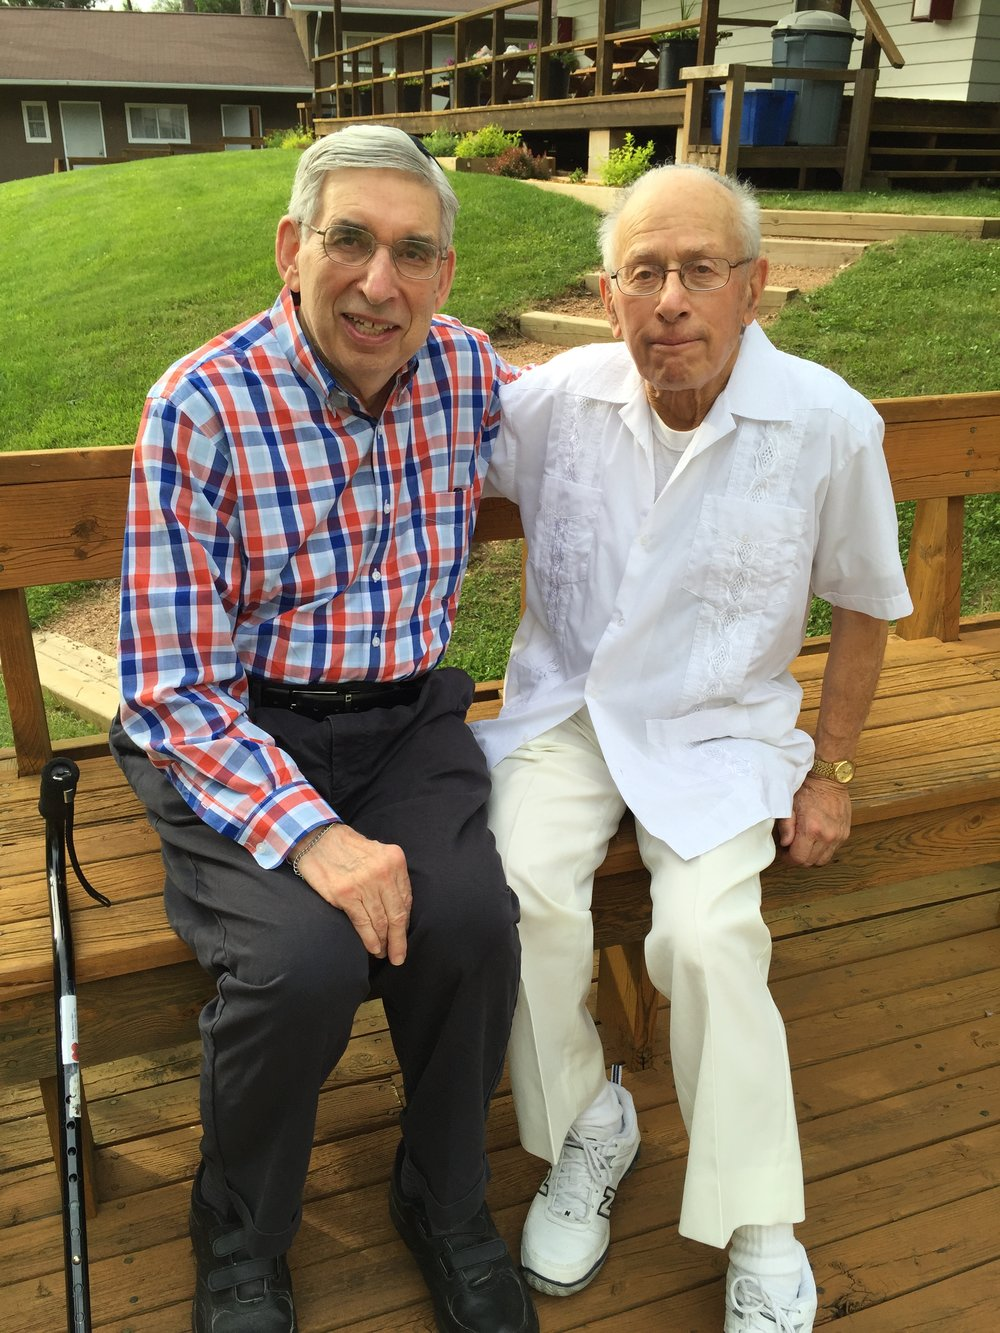 Rabbi Burt Cohen and Mayer Stiebel, both campers during Camp Ramah in Wisconsin's first season in 1947, are shown here during a recent visit to camp.